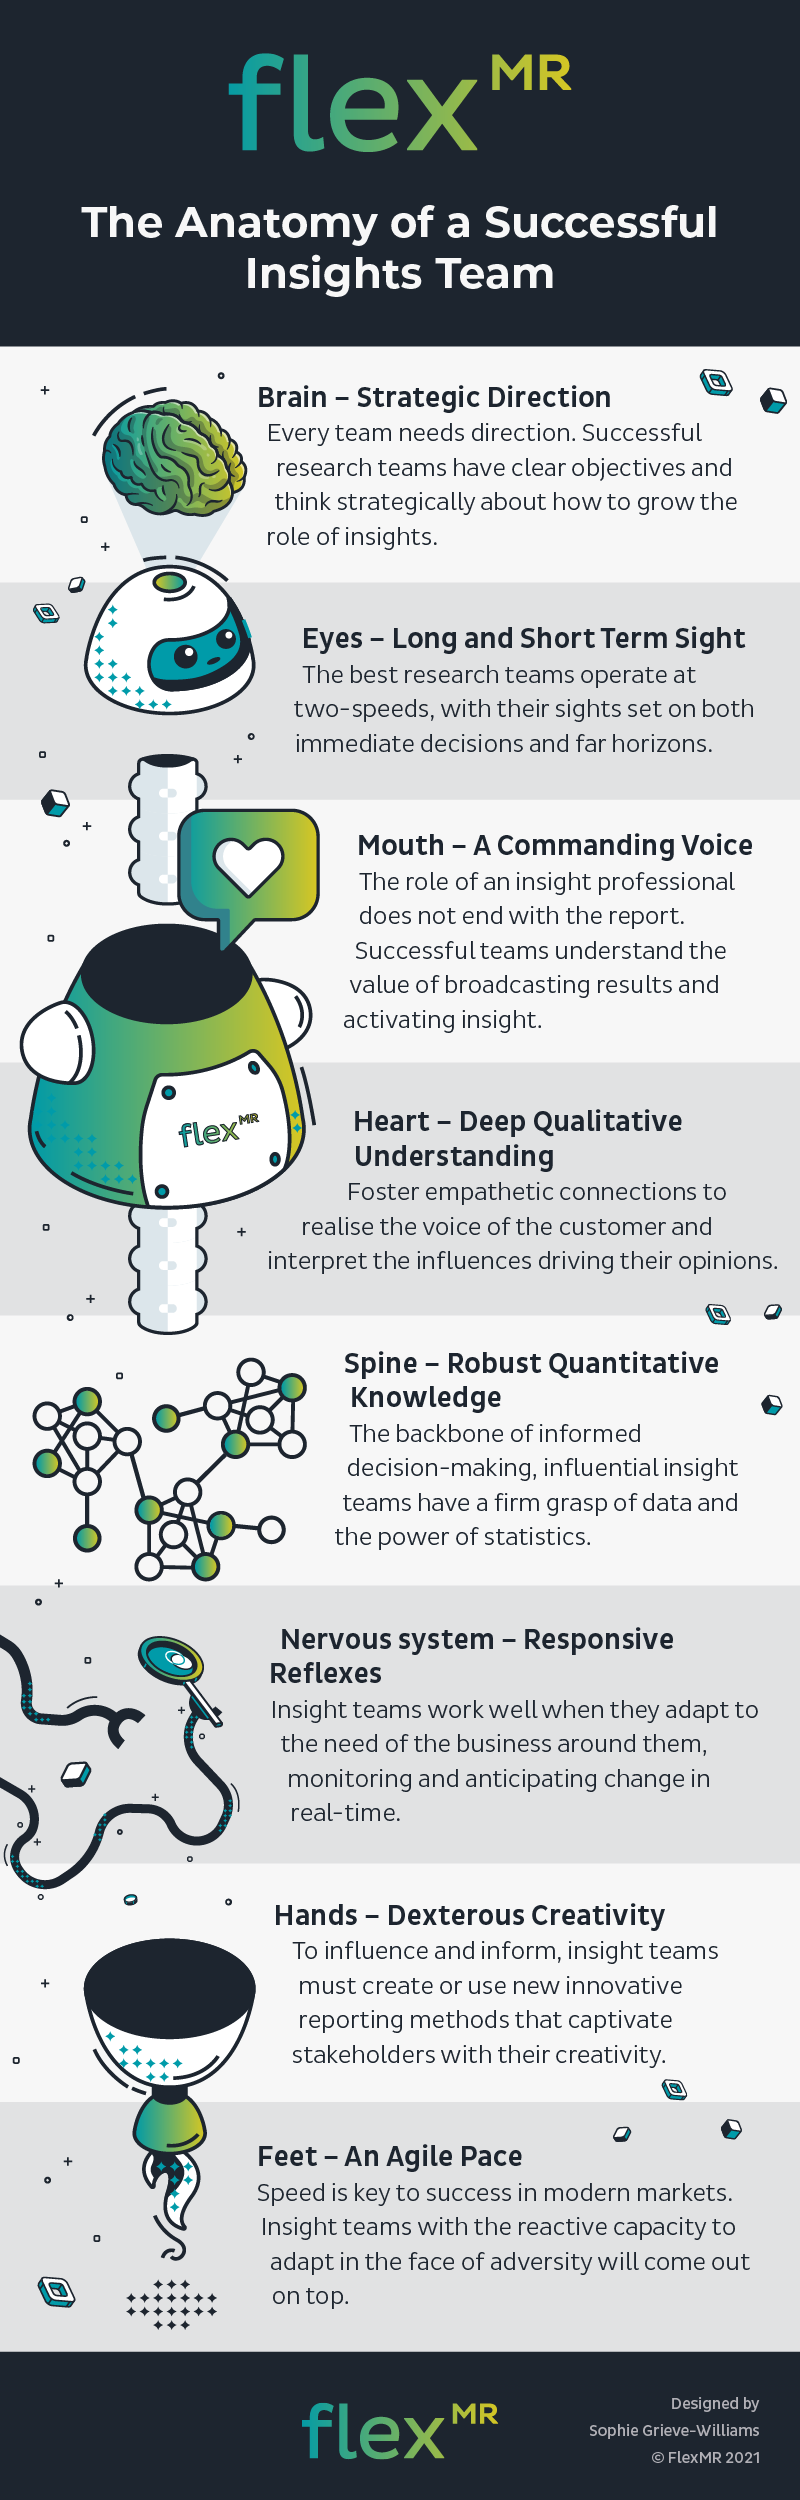 30055 Anatomy of a Successful Insights Team